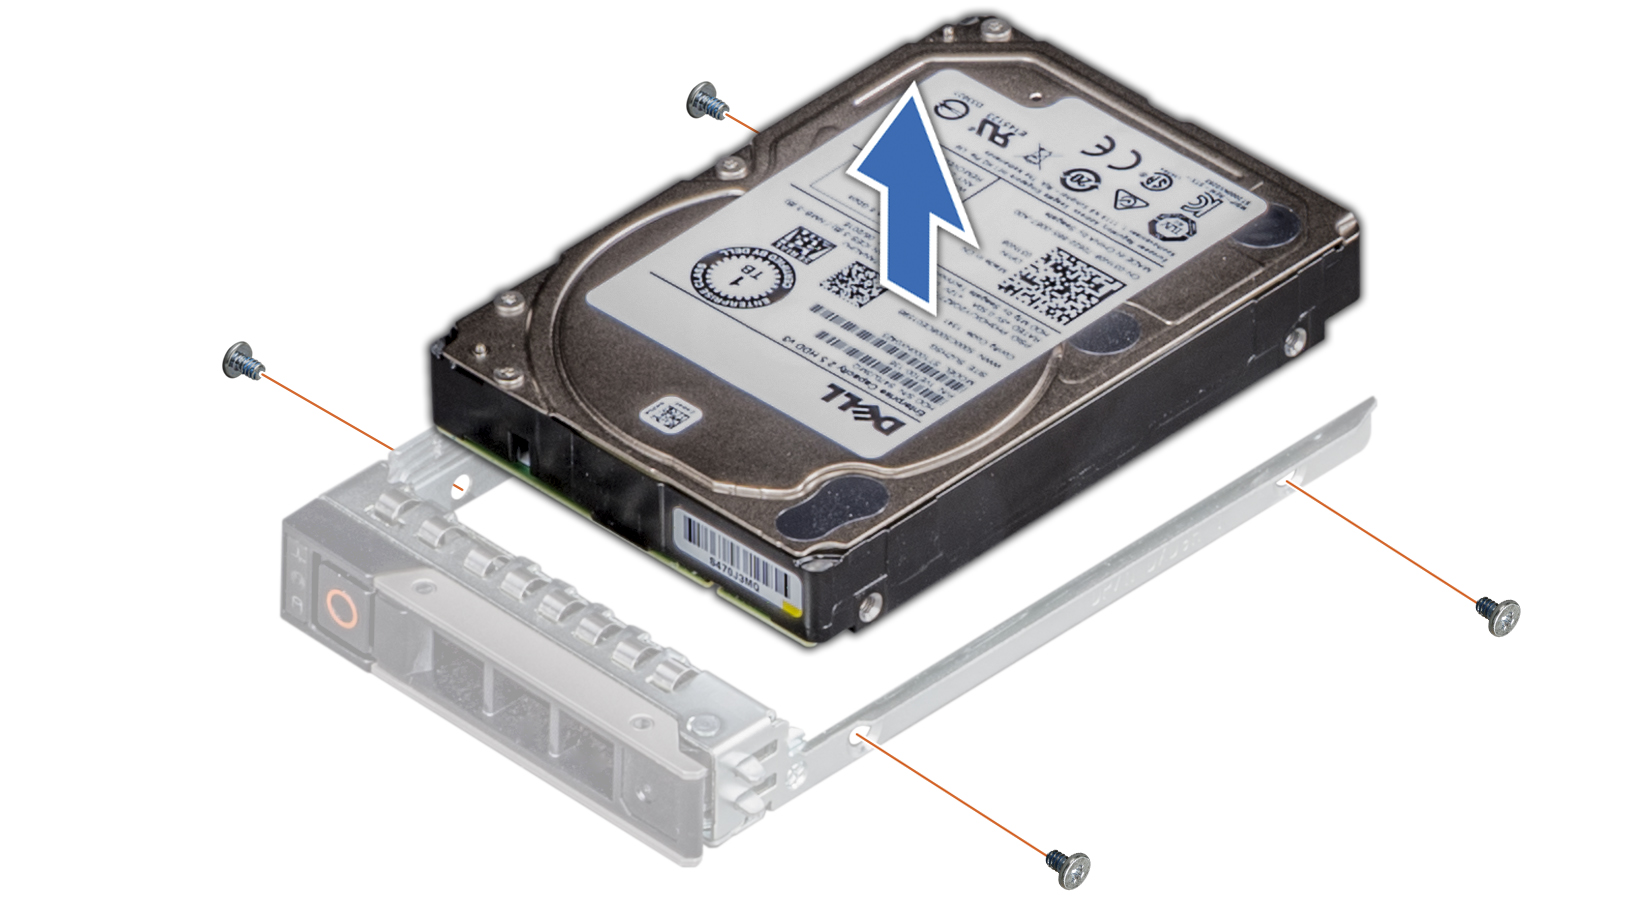 Figure displaying removing hard drive from the hard drive carrier